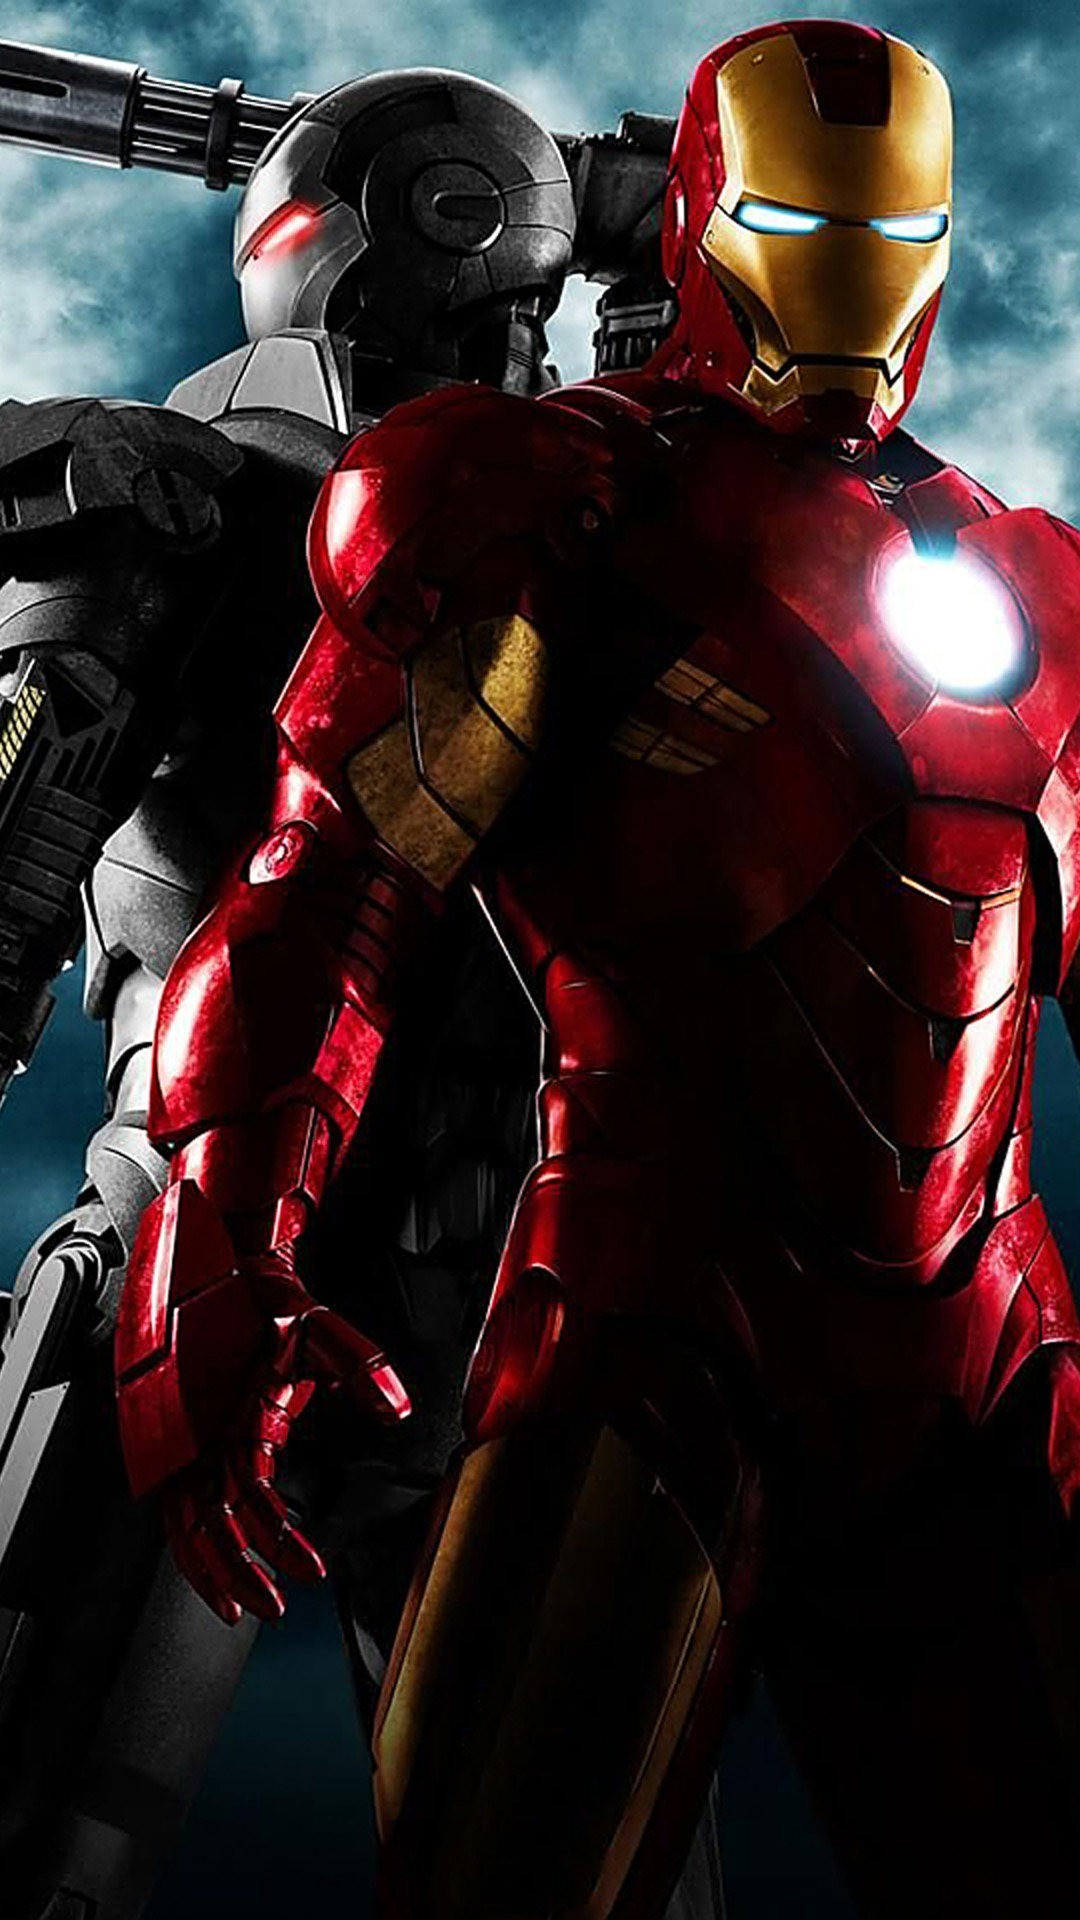 Ironman Hd Wallpapers For Moto Z Play Wallpaperspictures